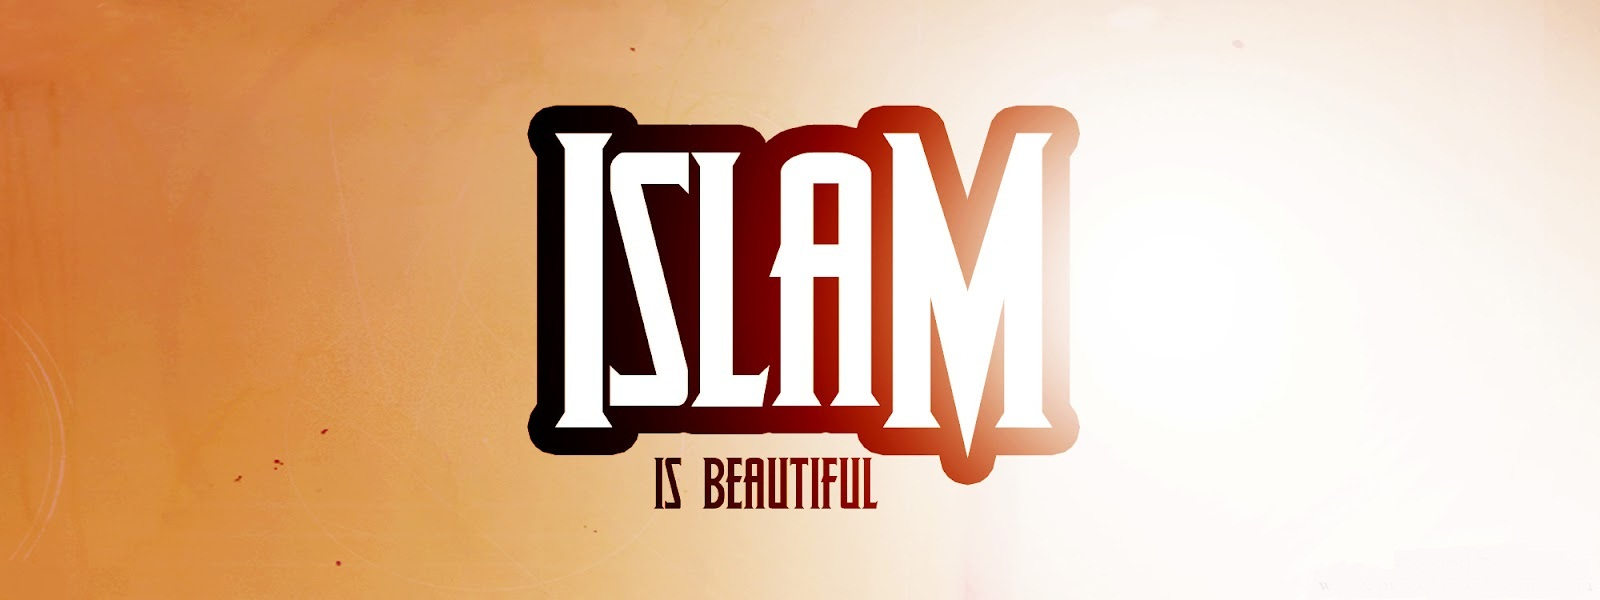 best facebook cover photos islamic